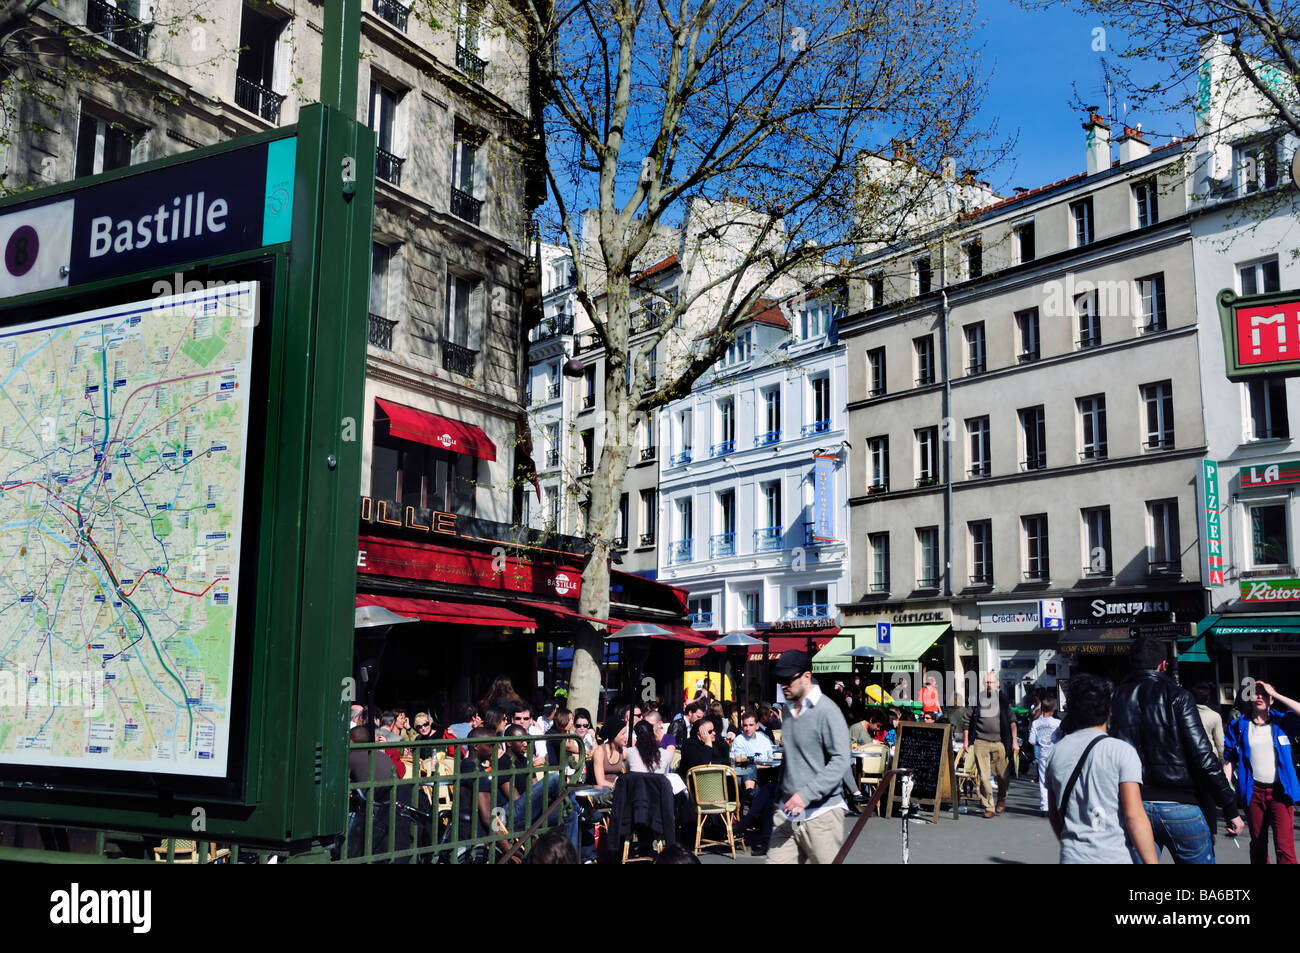 Paris France, Street Scene'  Cafe People Crowded Terrace, Parisian street café scene - Stock Image